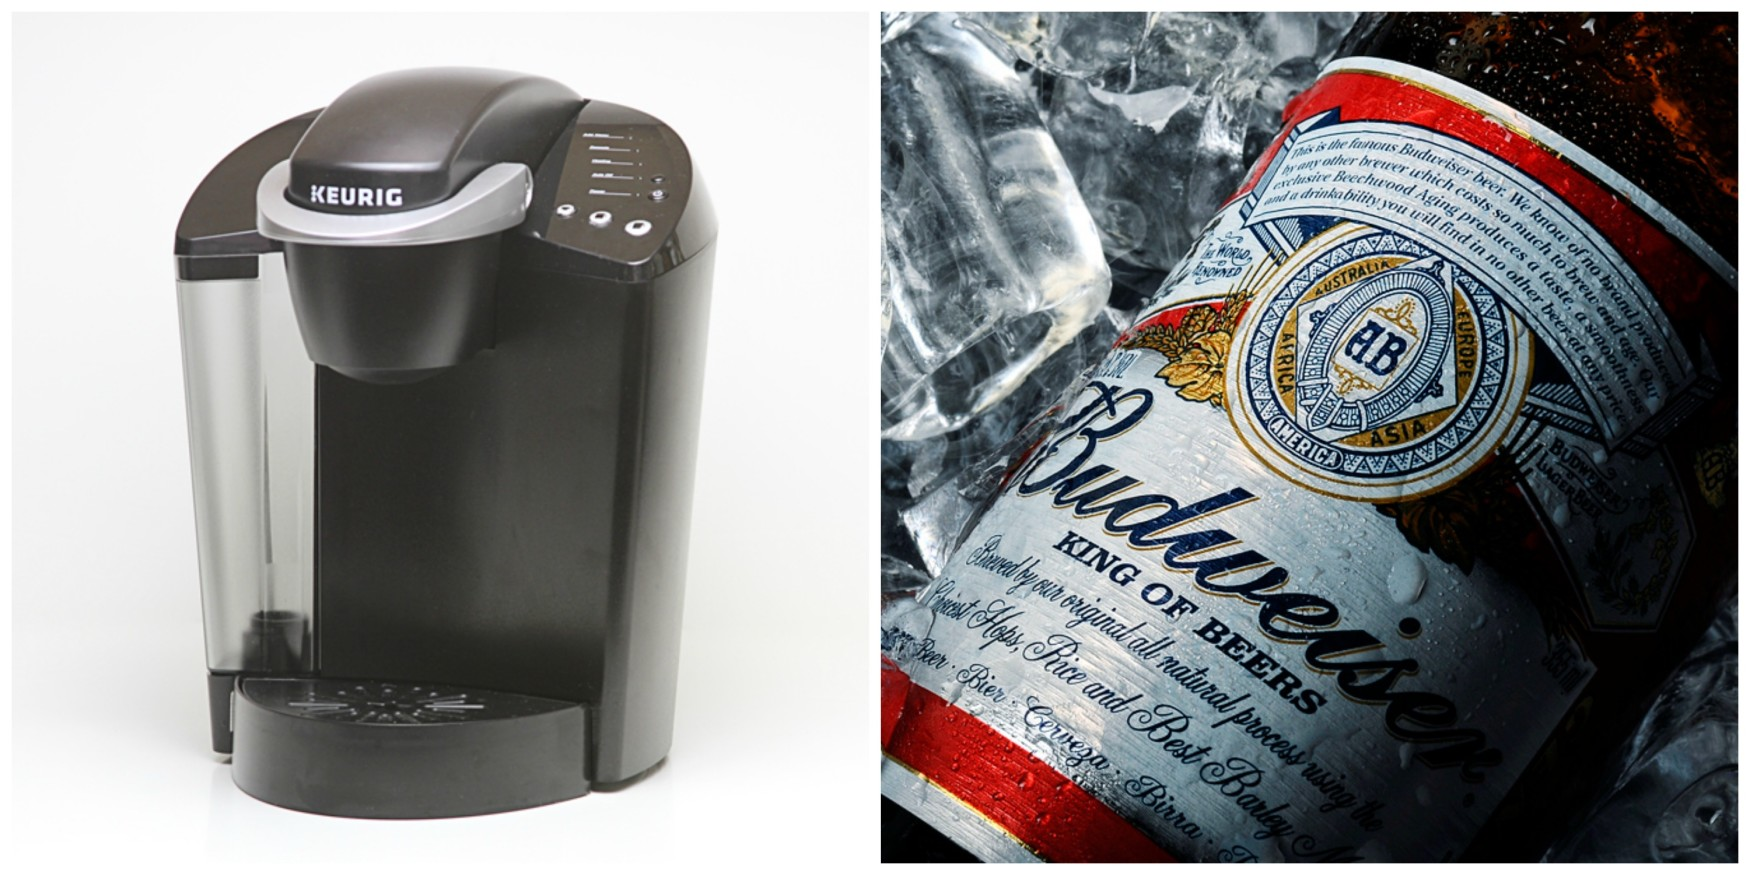 You May Soon Be Brewing Budweiser From Your Keurig